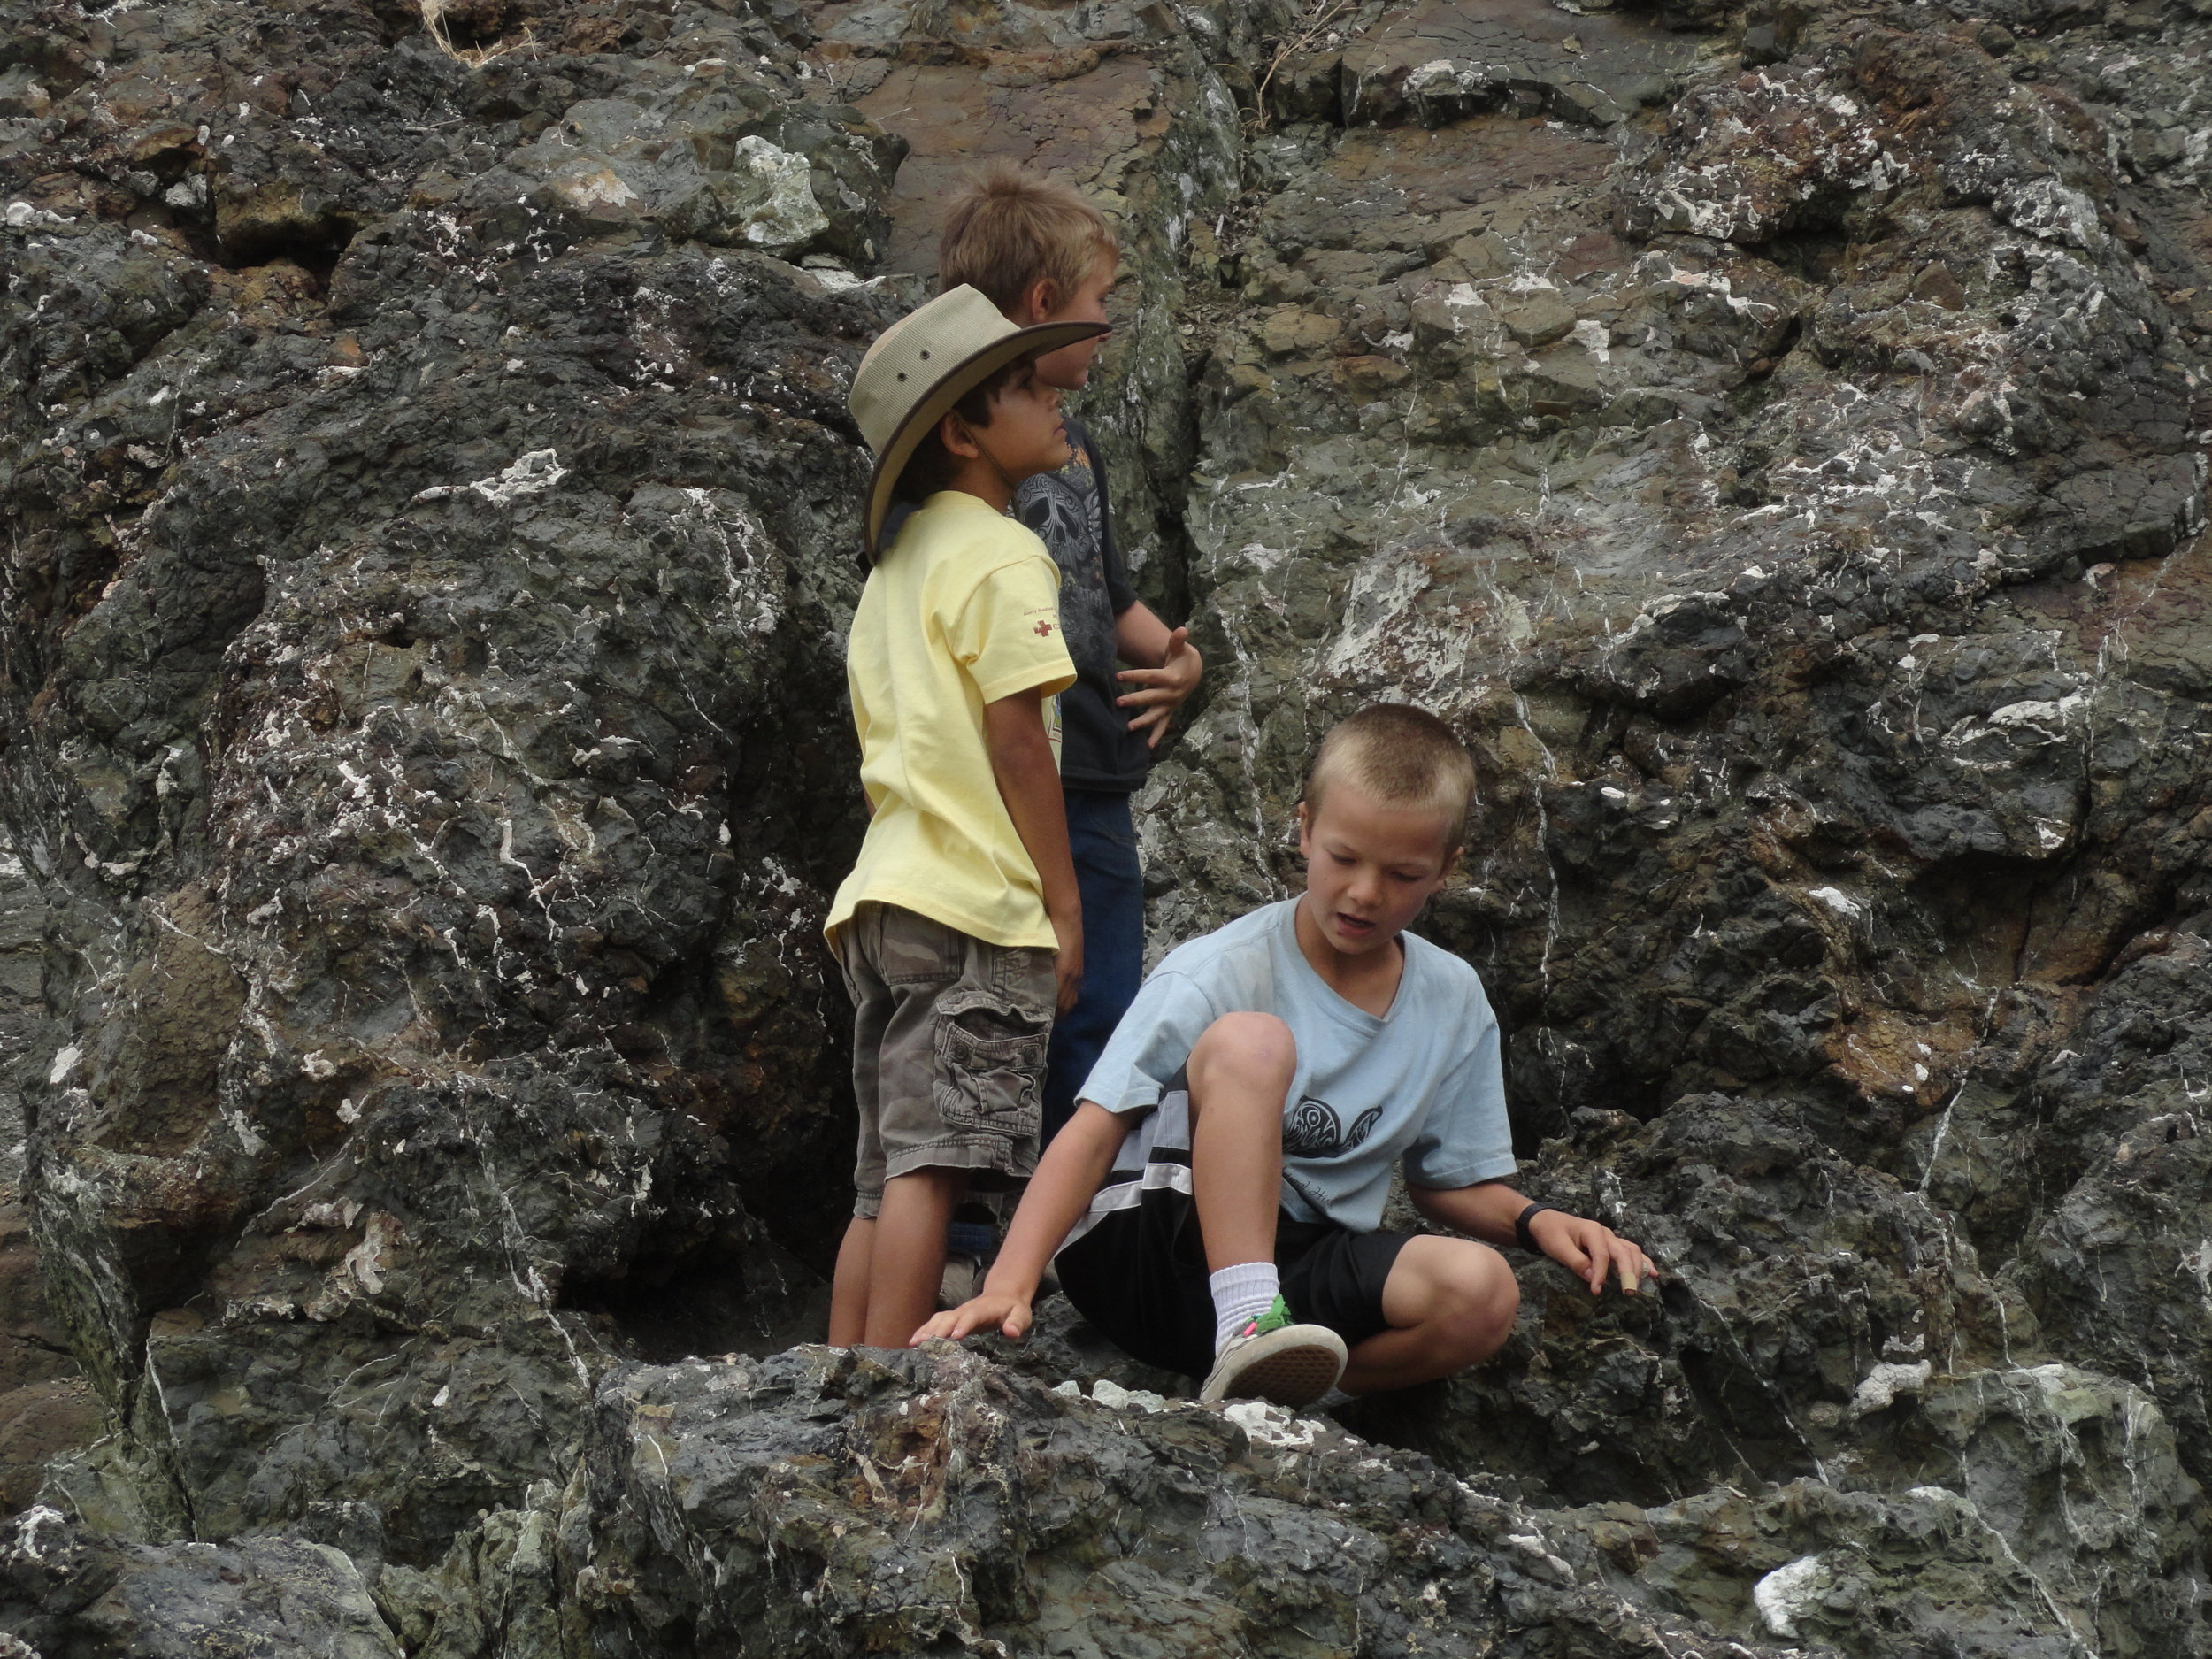 Examining pillow lava @ Port San Luis, students see the effects of underwater volcanic activity.